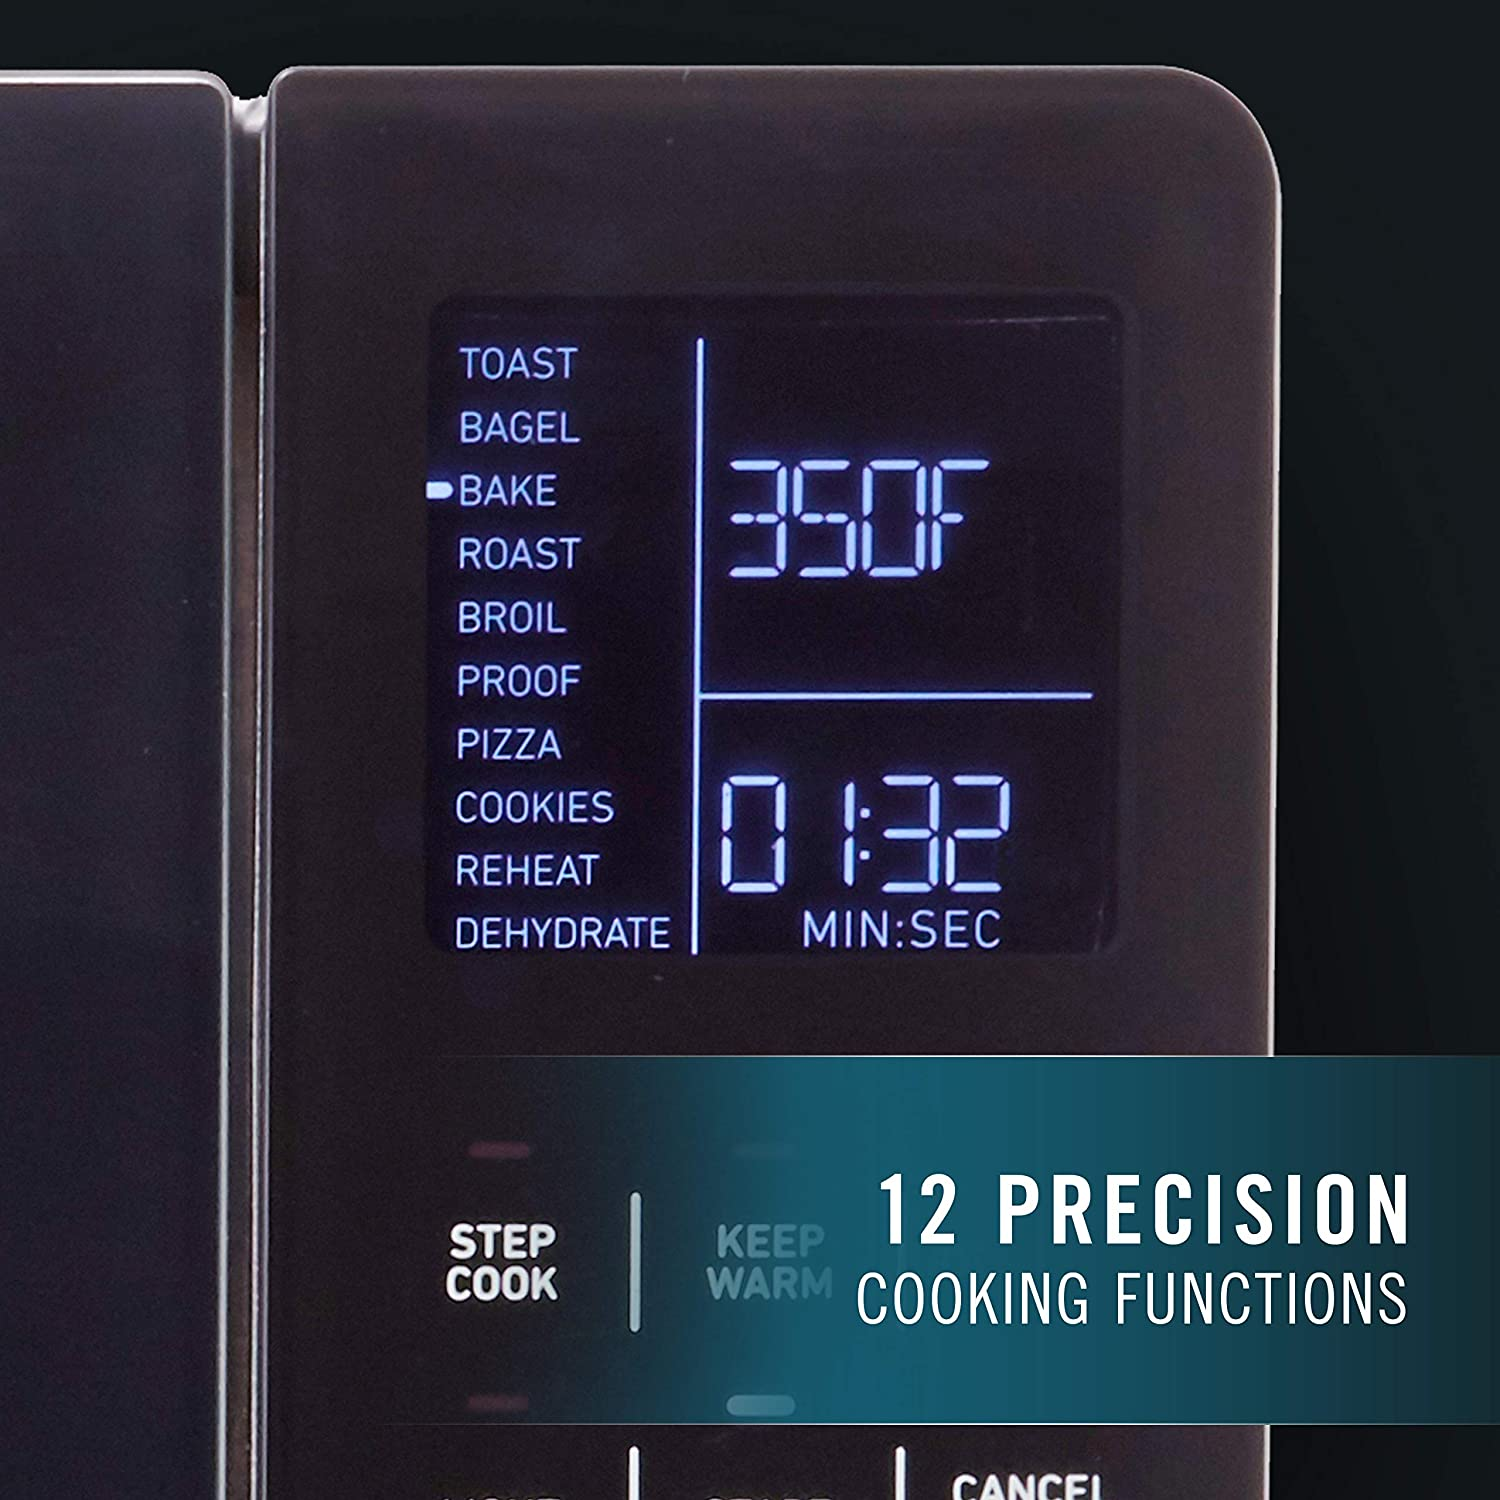 Calphalon-2106488-Cool-Touch-Countertop-oven-Large